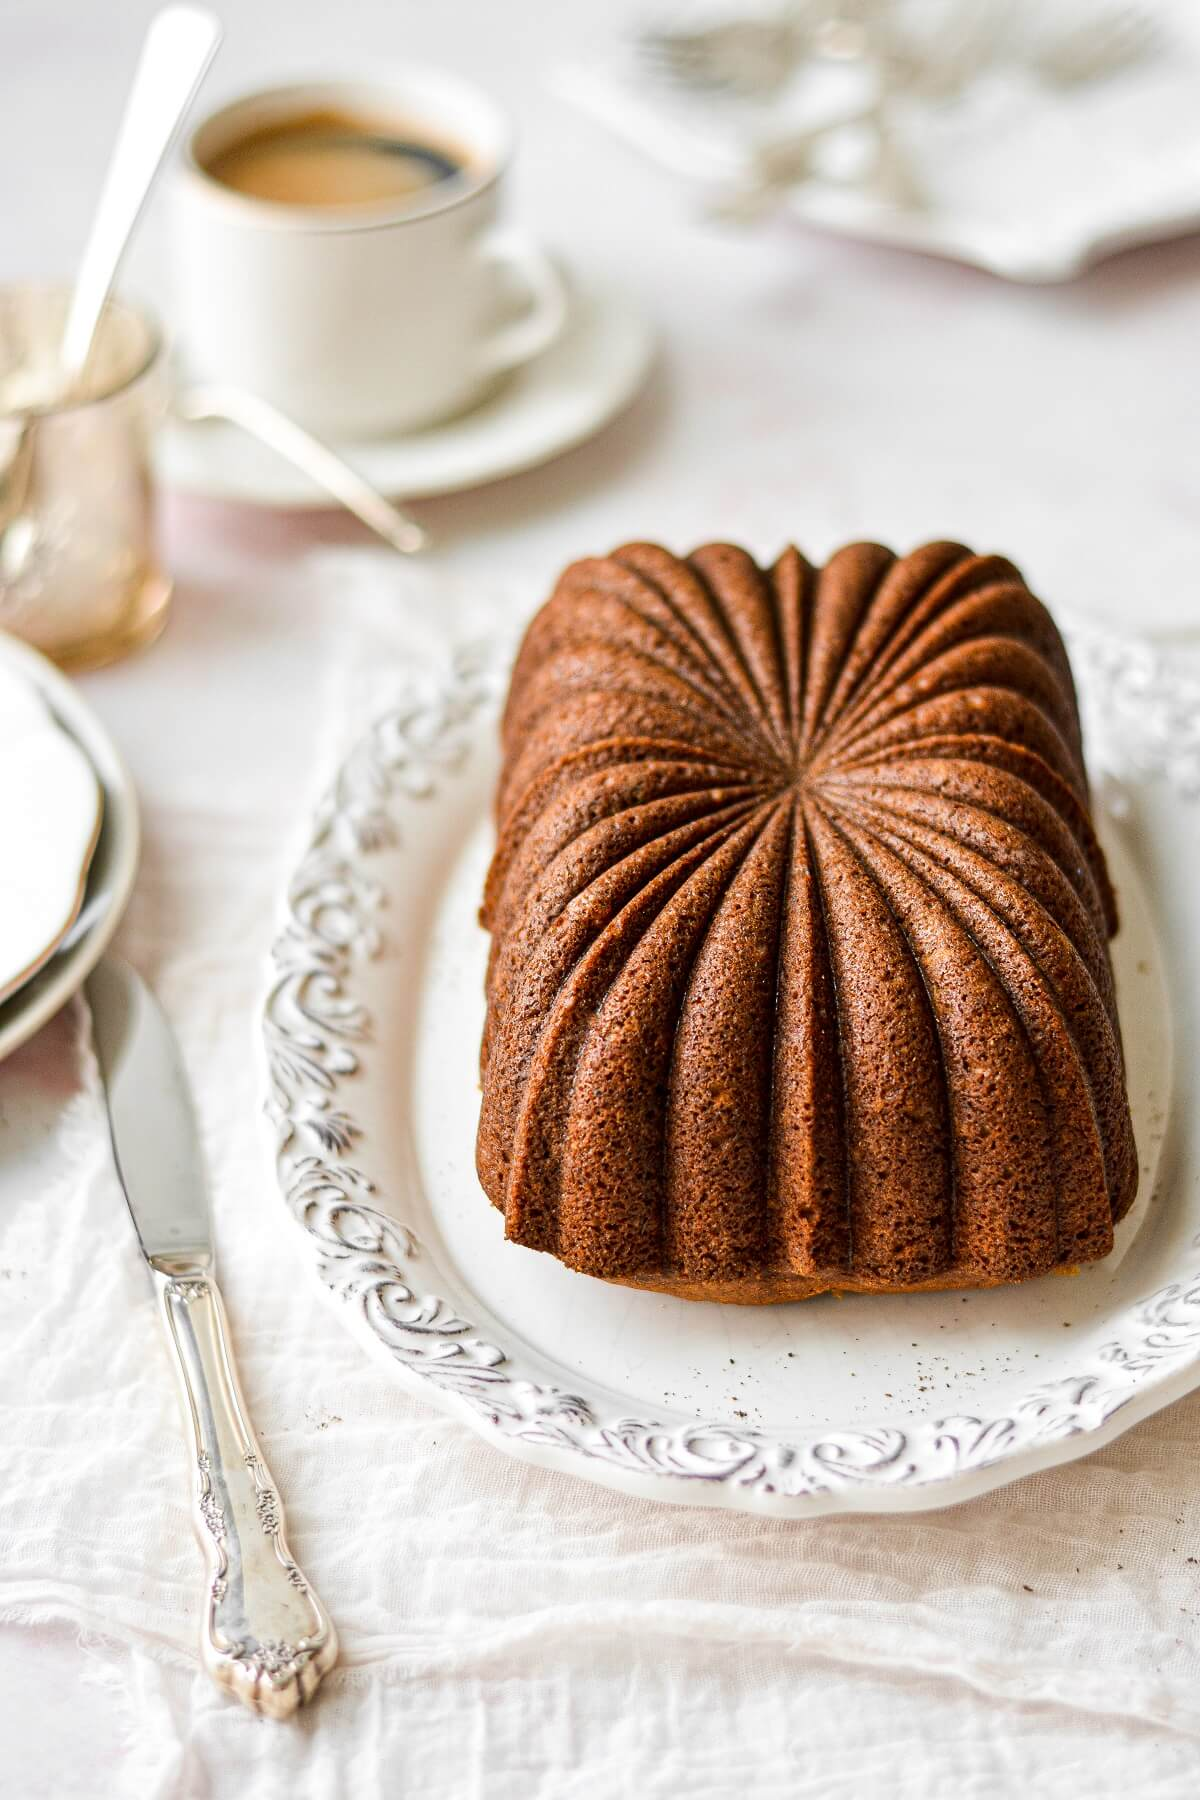 A loaf of pumpkin bread on a white plate.